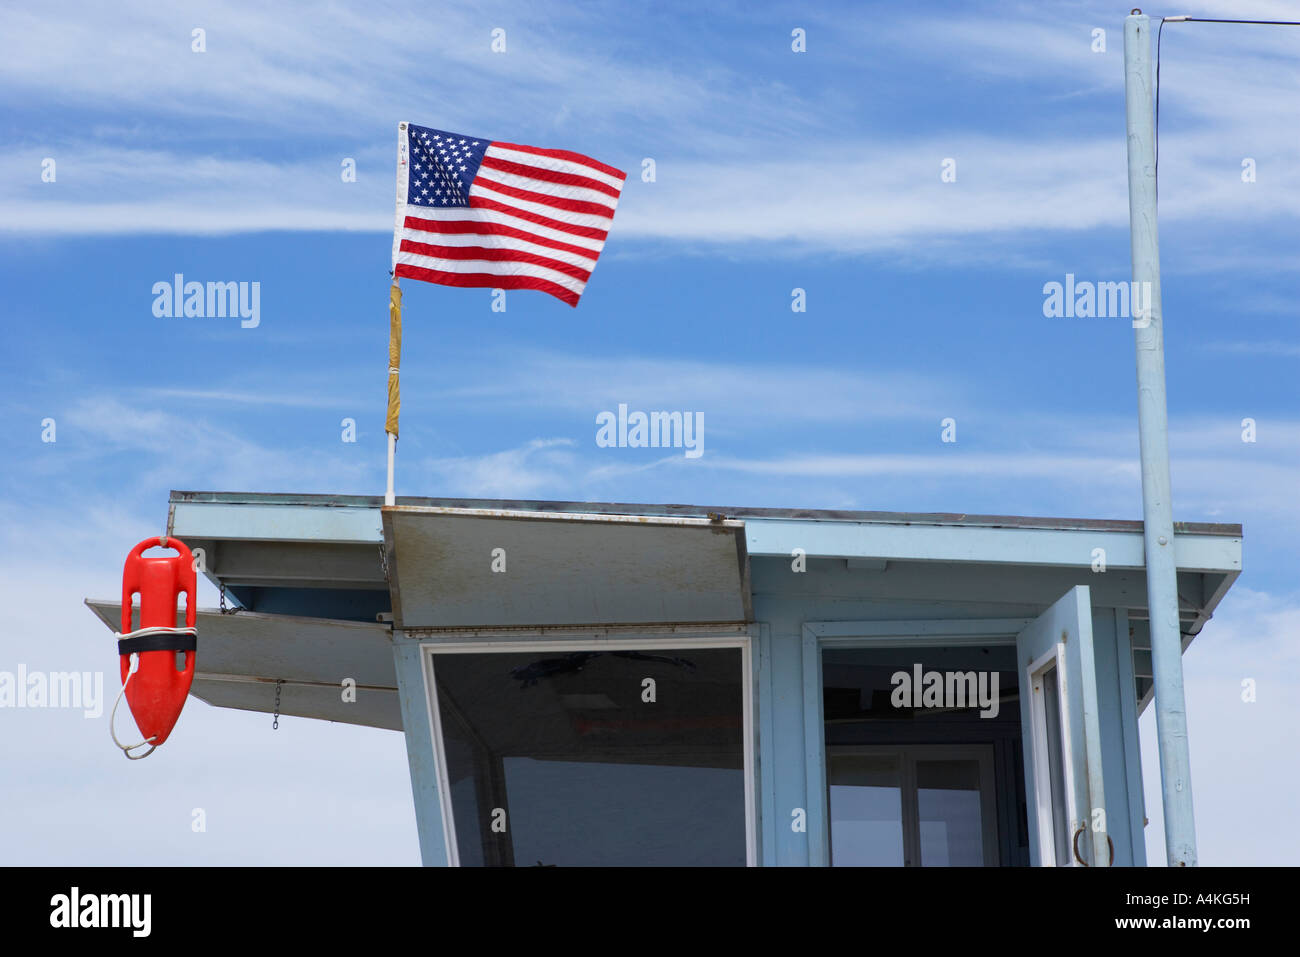 Lifeguard Tower on Beach in Santa Monica, Los Angeles California, USA. - Stock Image